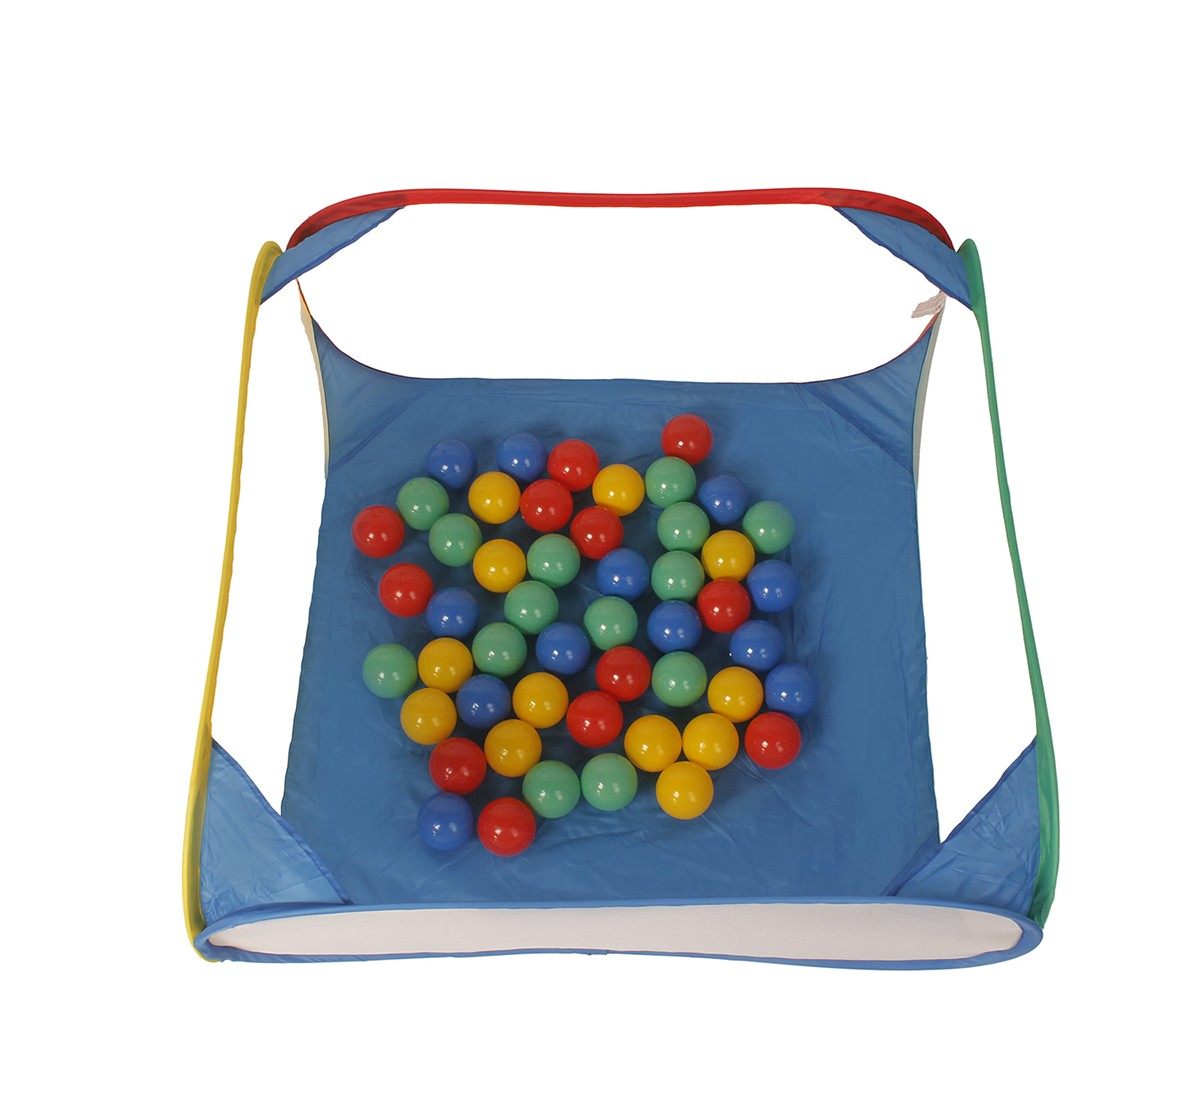 Hamleys Baby Ball Zone Baby Gear for Kids age 12M+